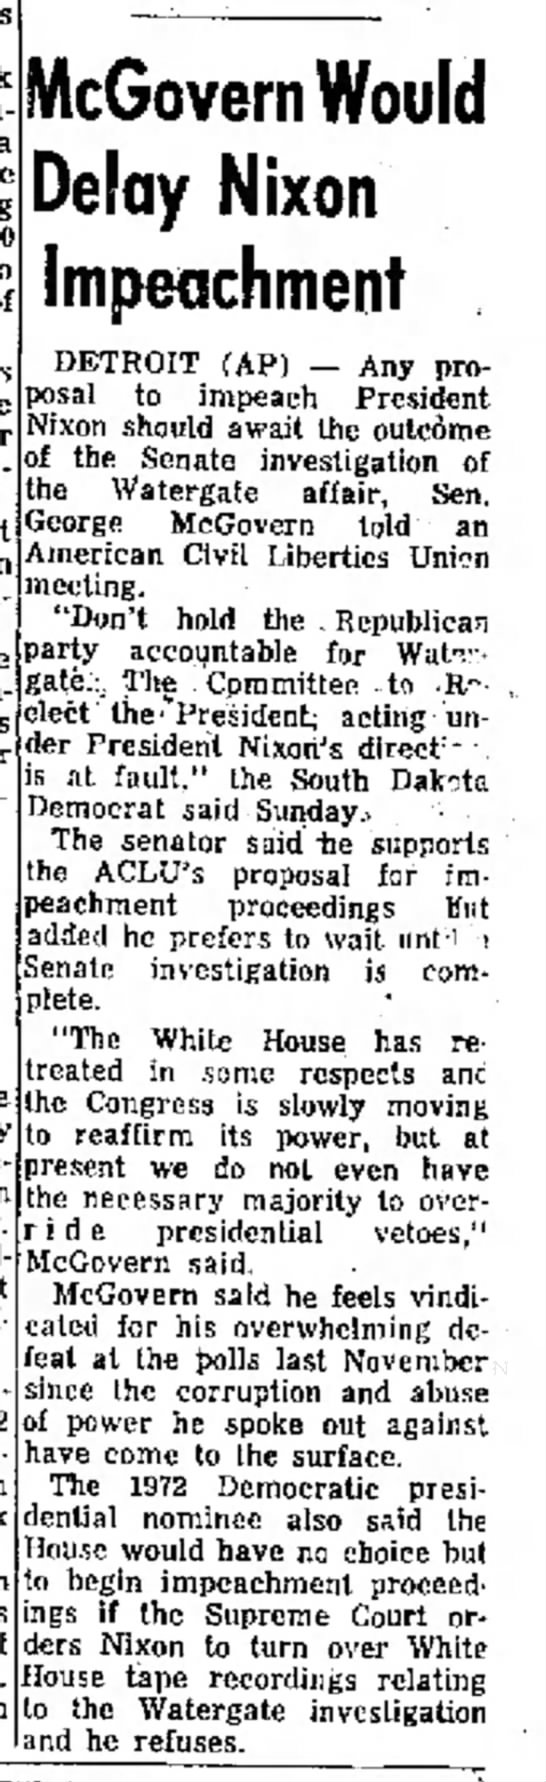 McGovern before the ACLU -